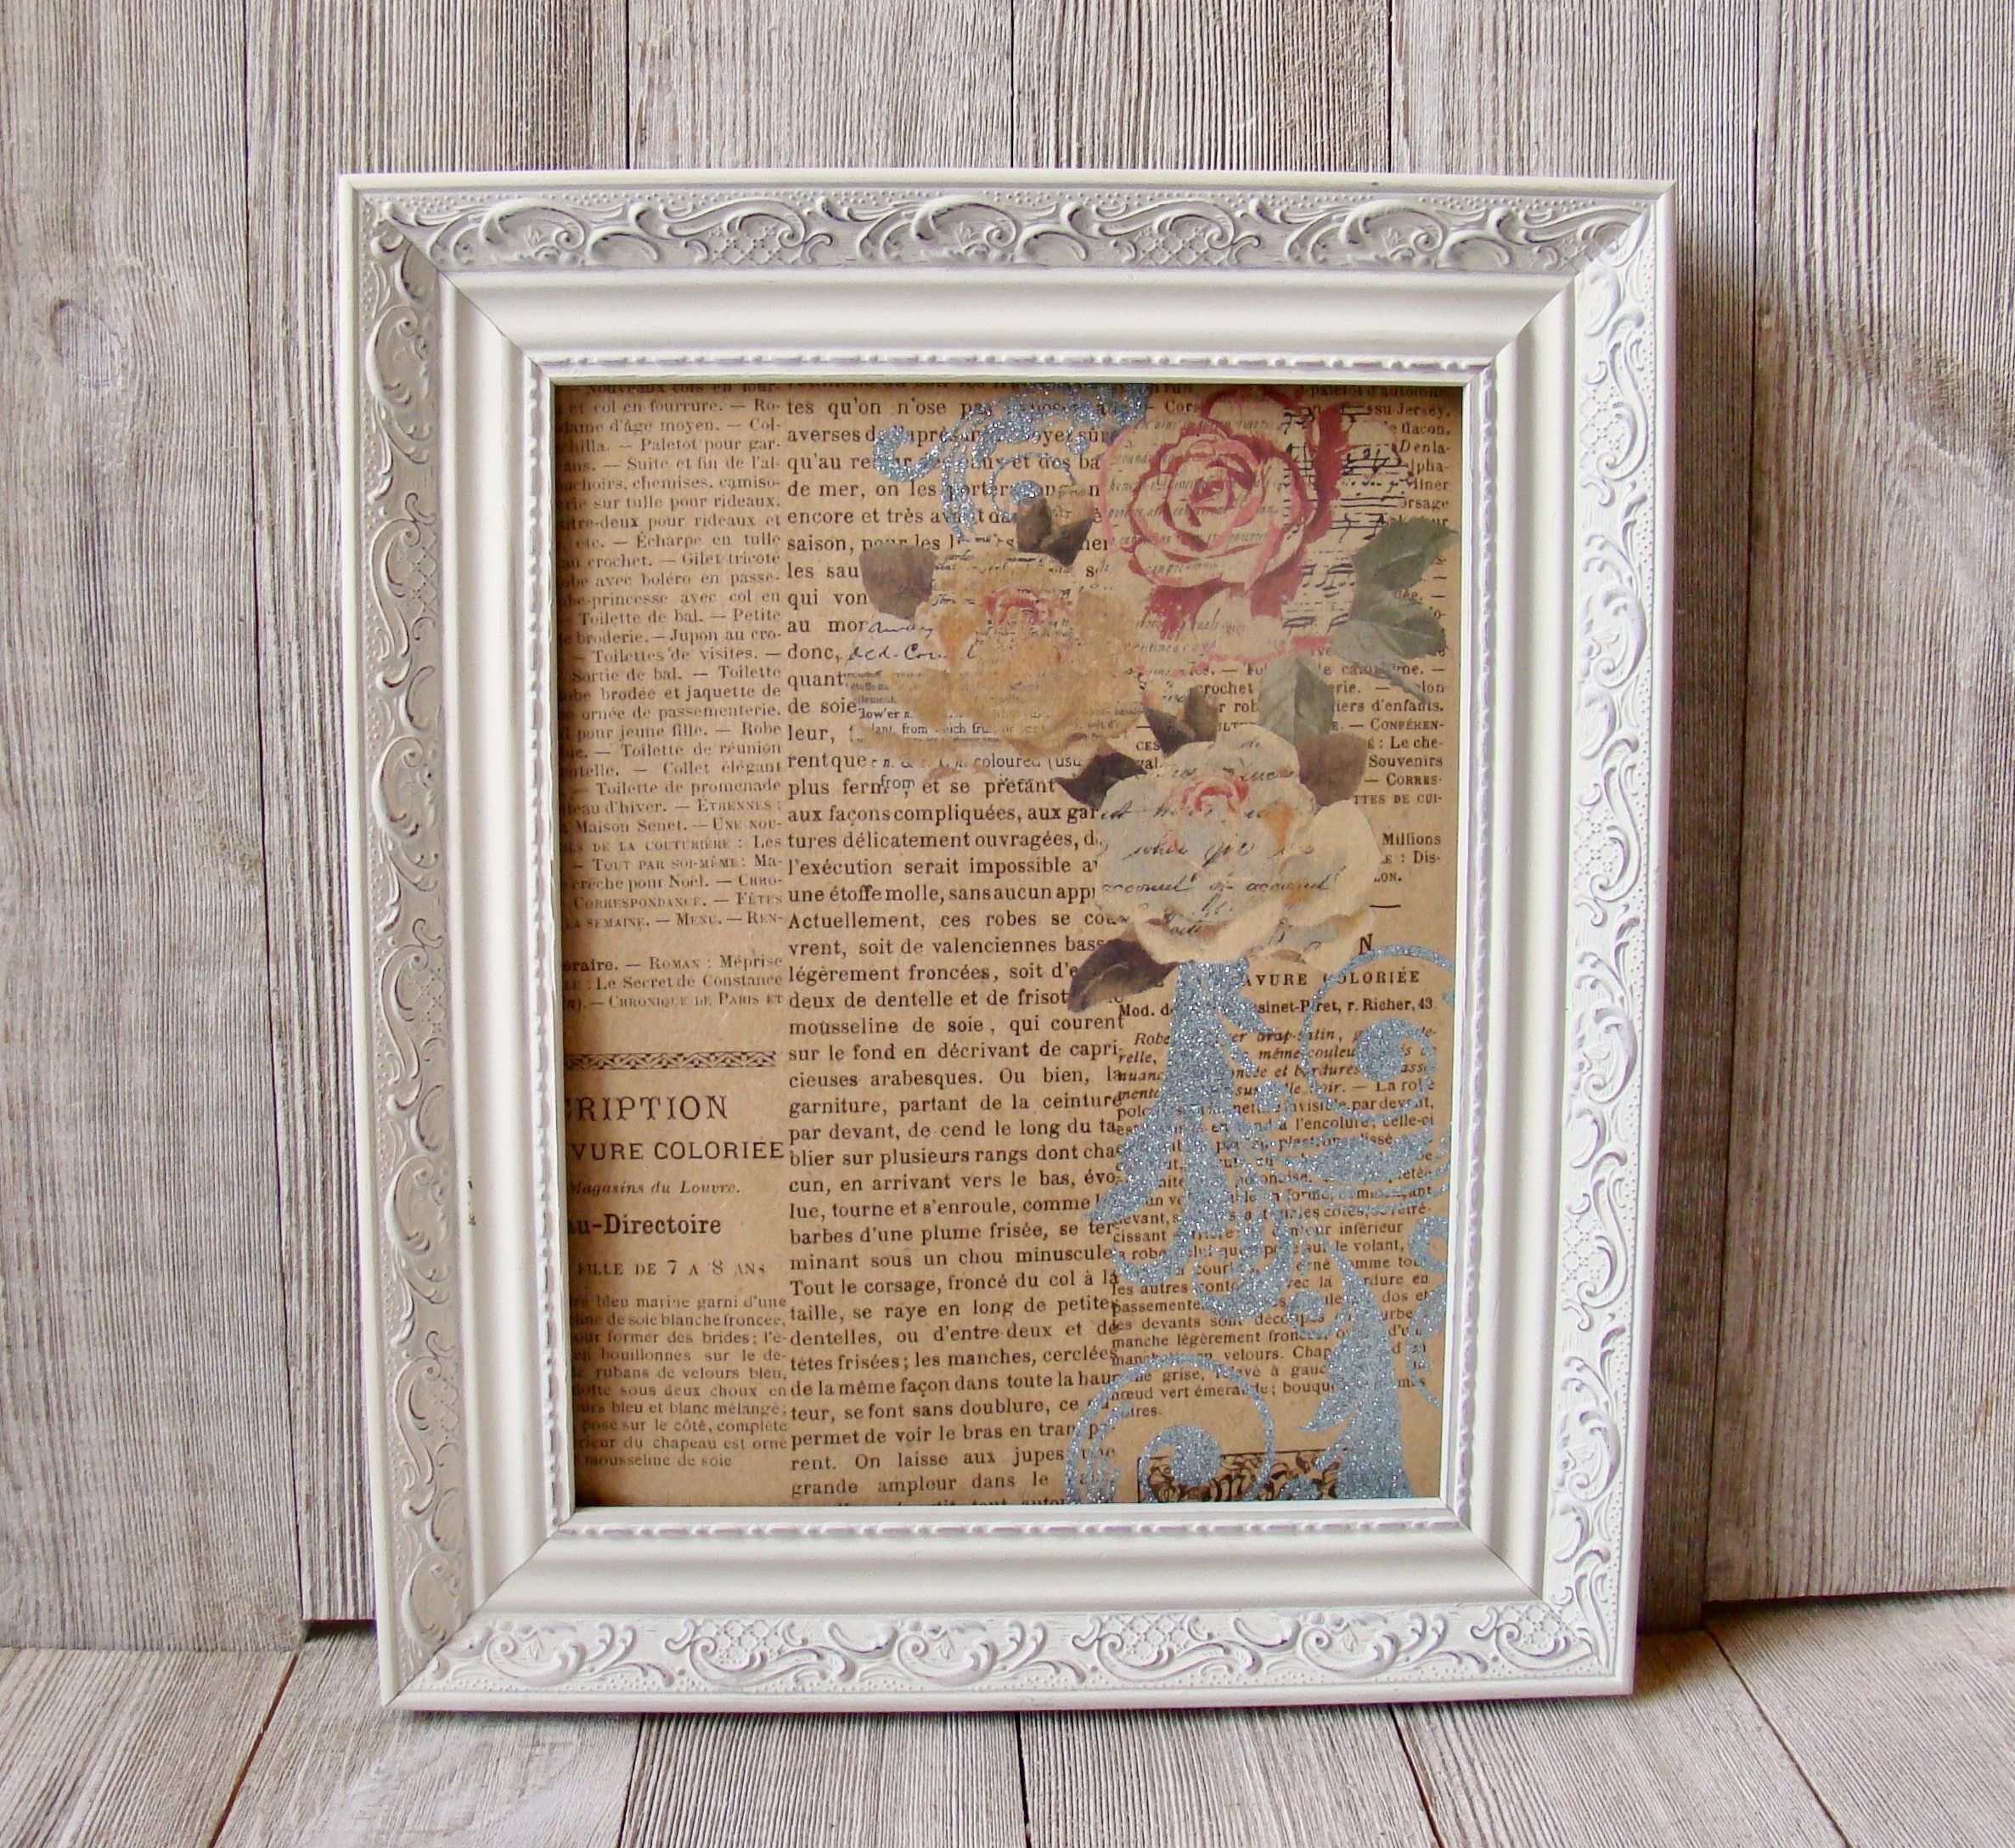 8 X 10 Ornate White Distressed Frame In 2020 White Distressed Frame Frame White Picture Frames